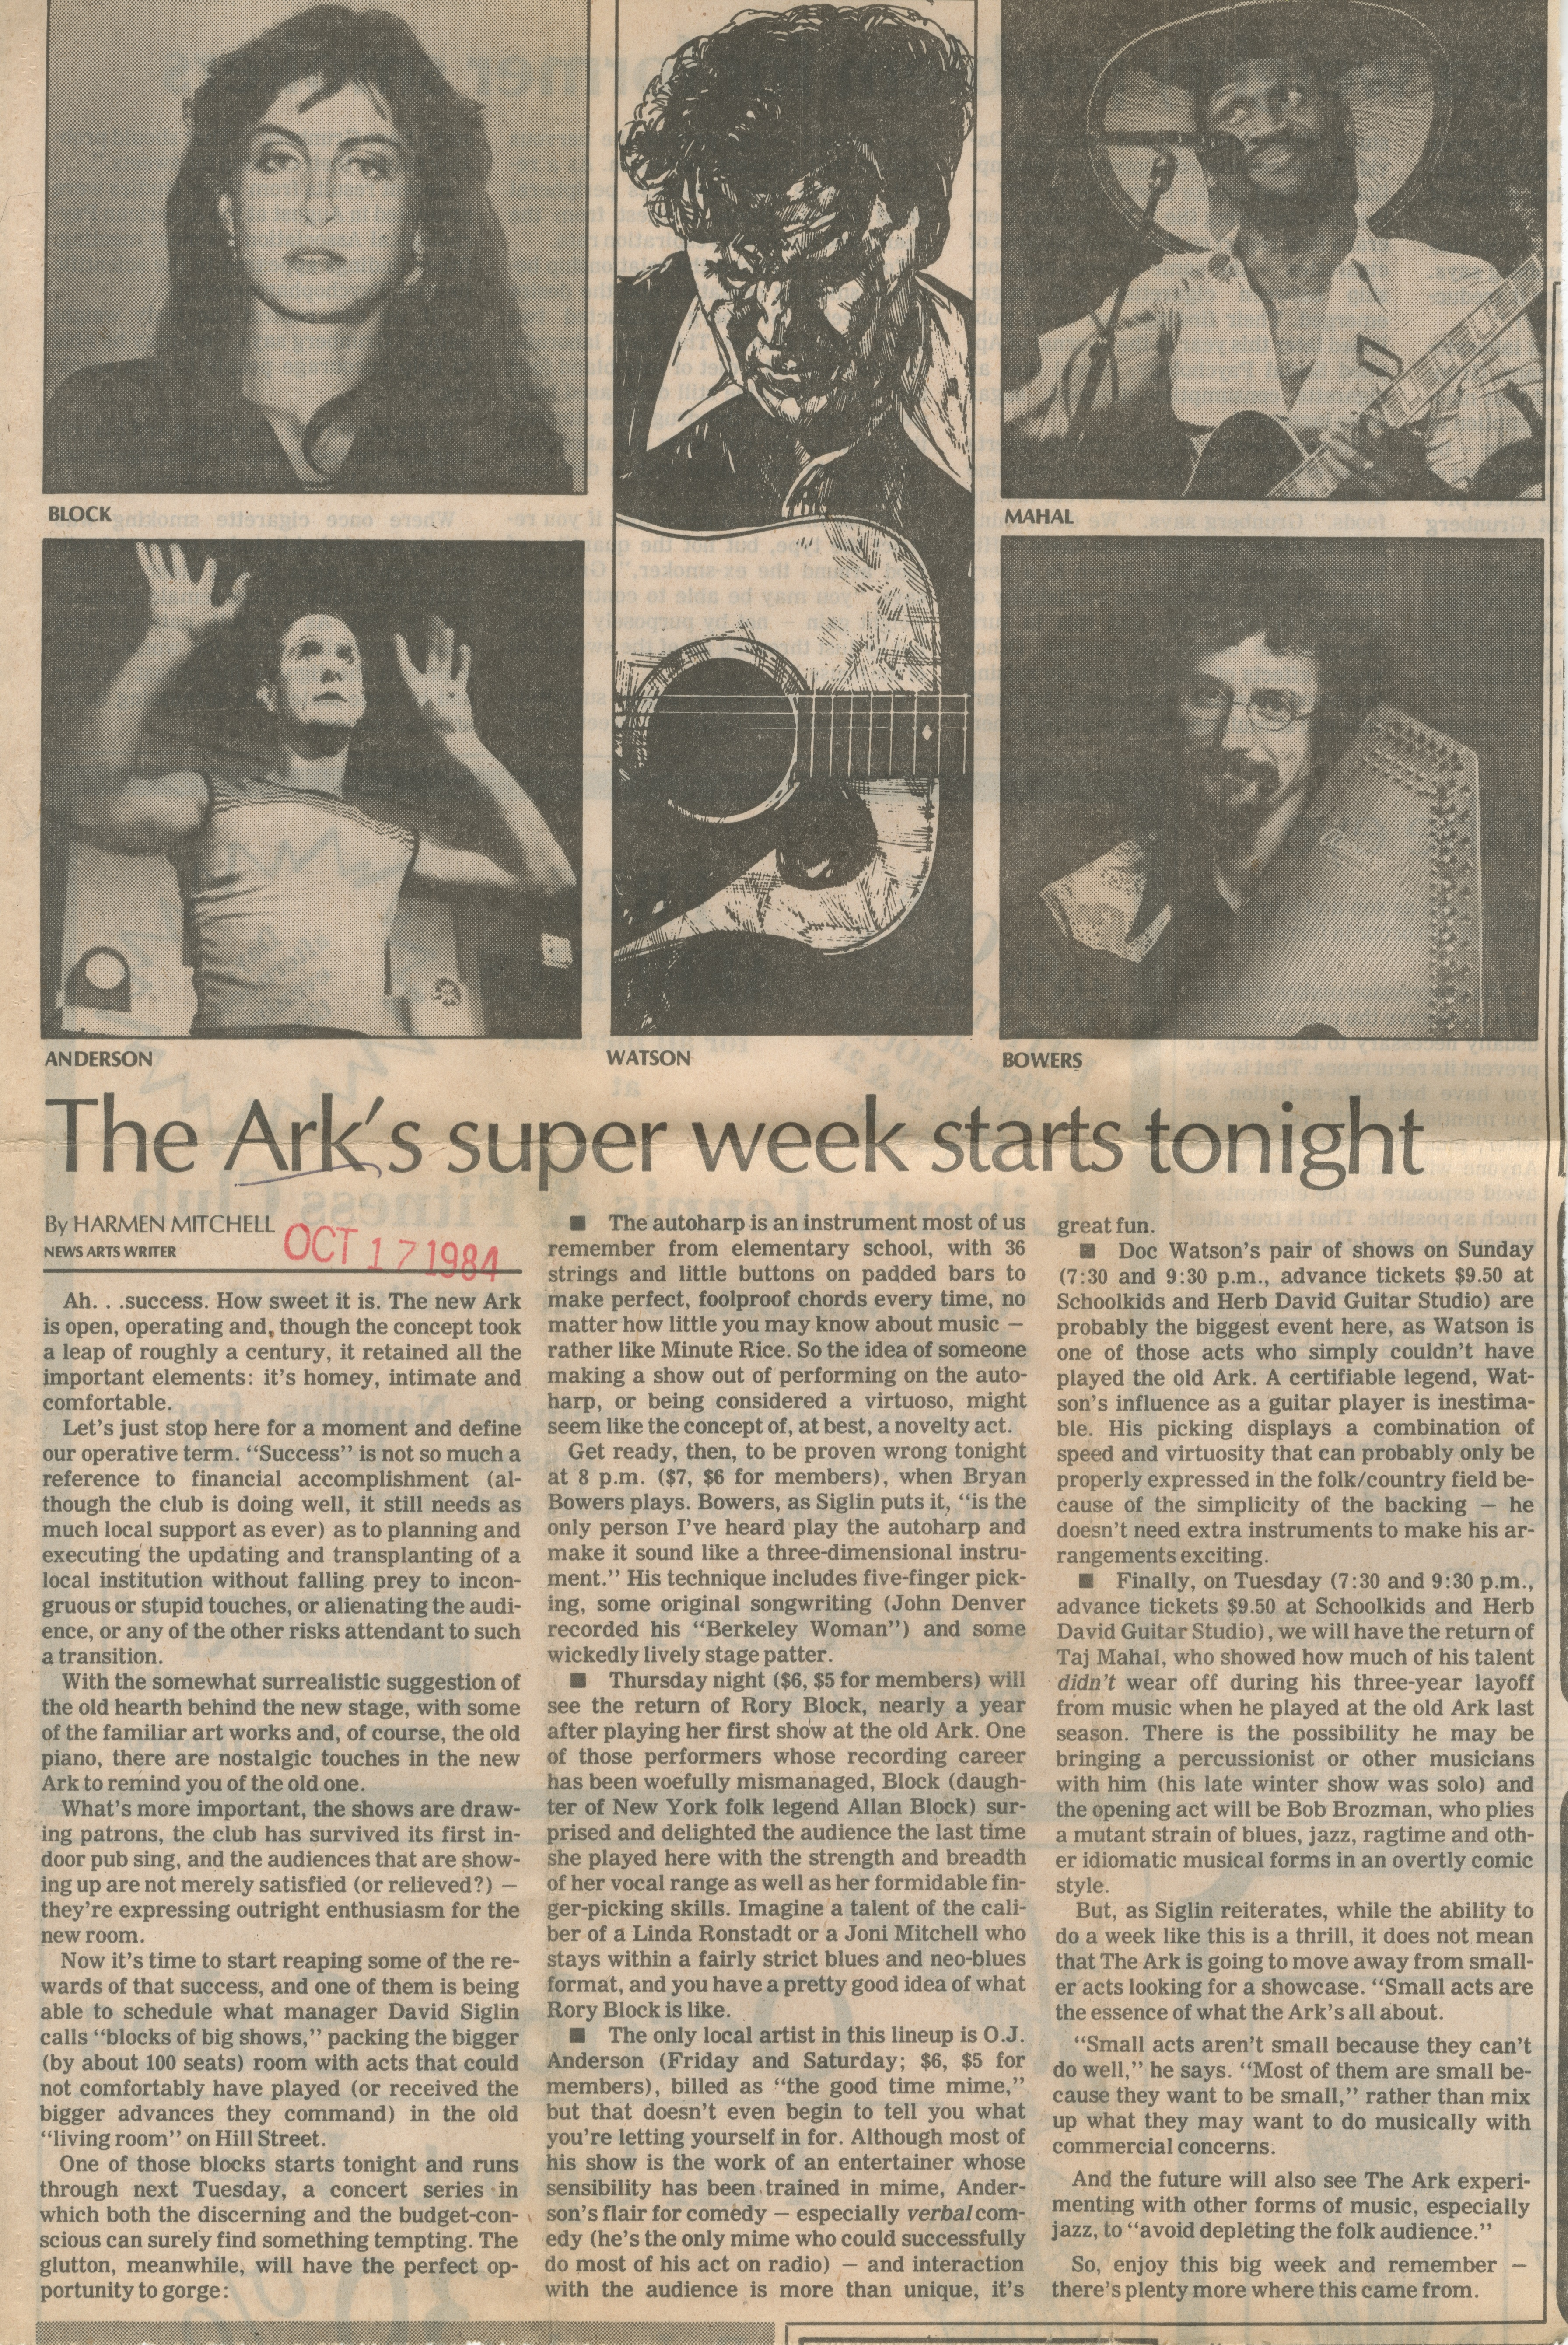 The Ark's Super Week Starts Tonight image